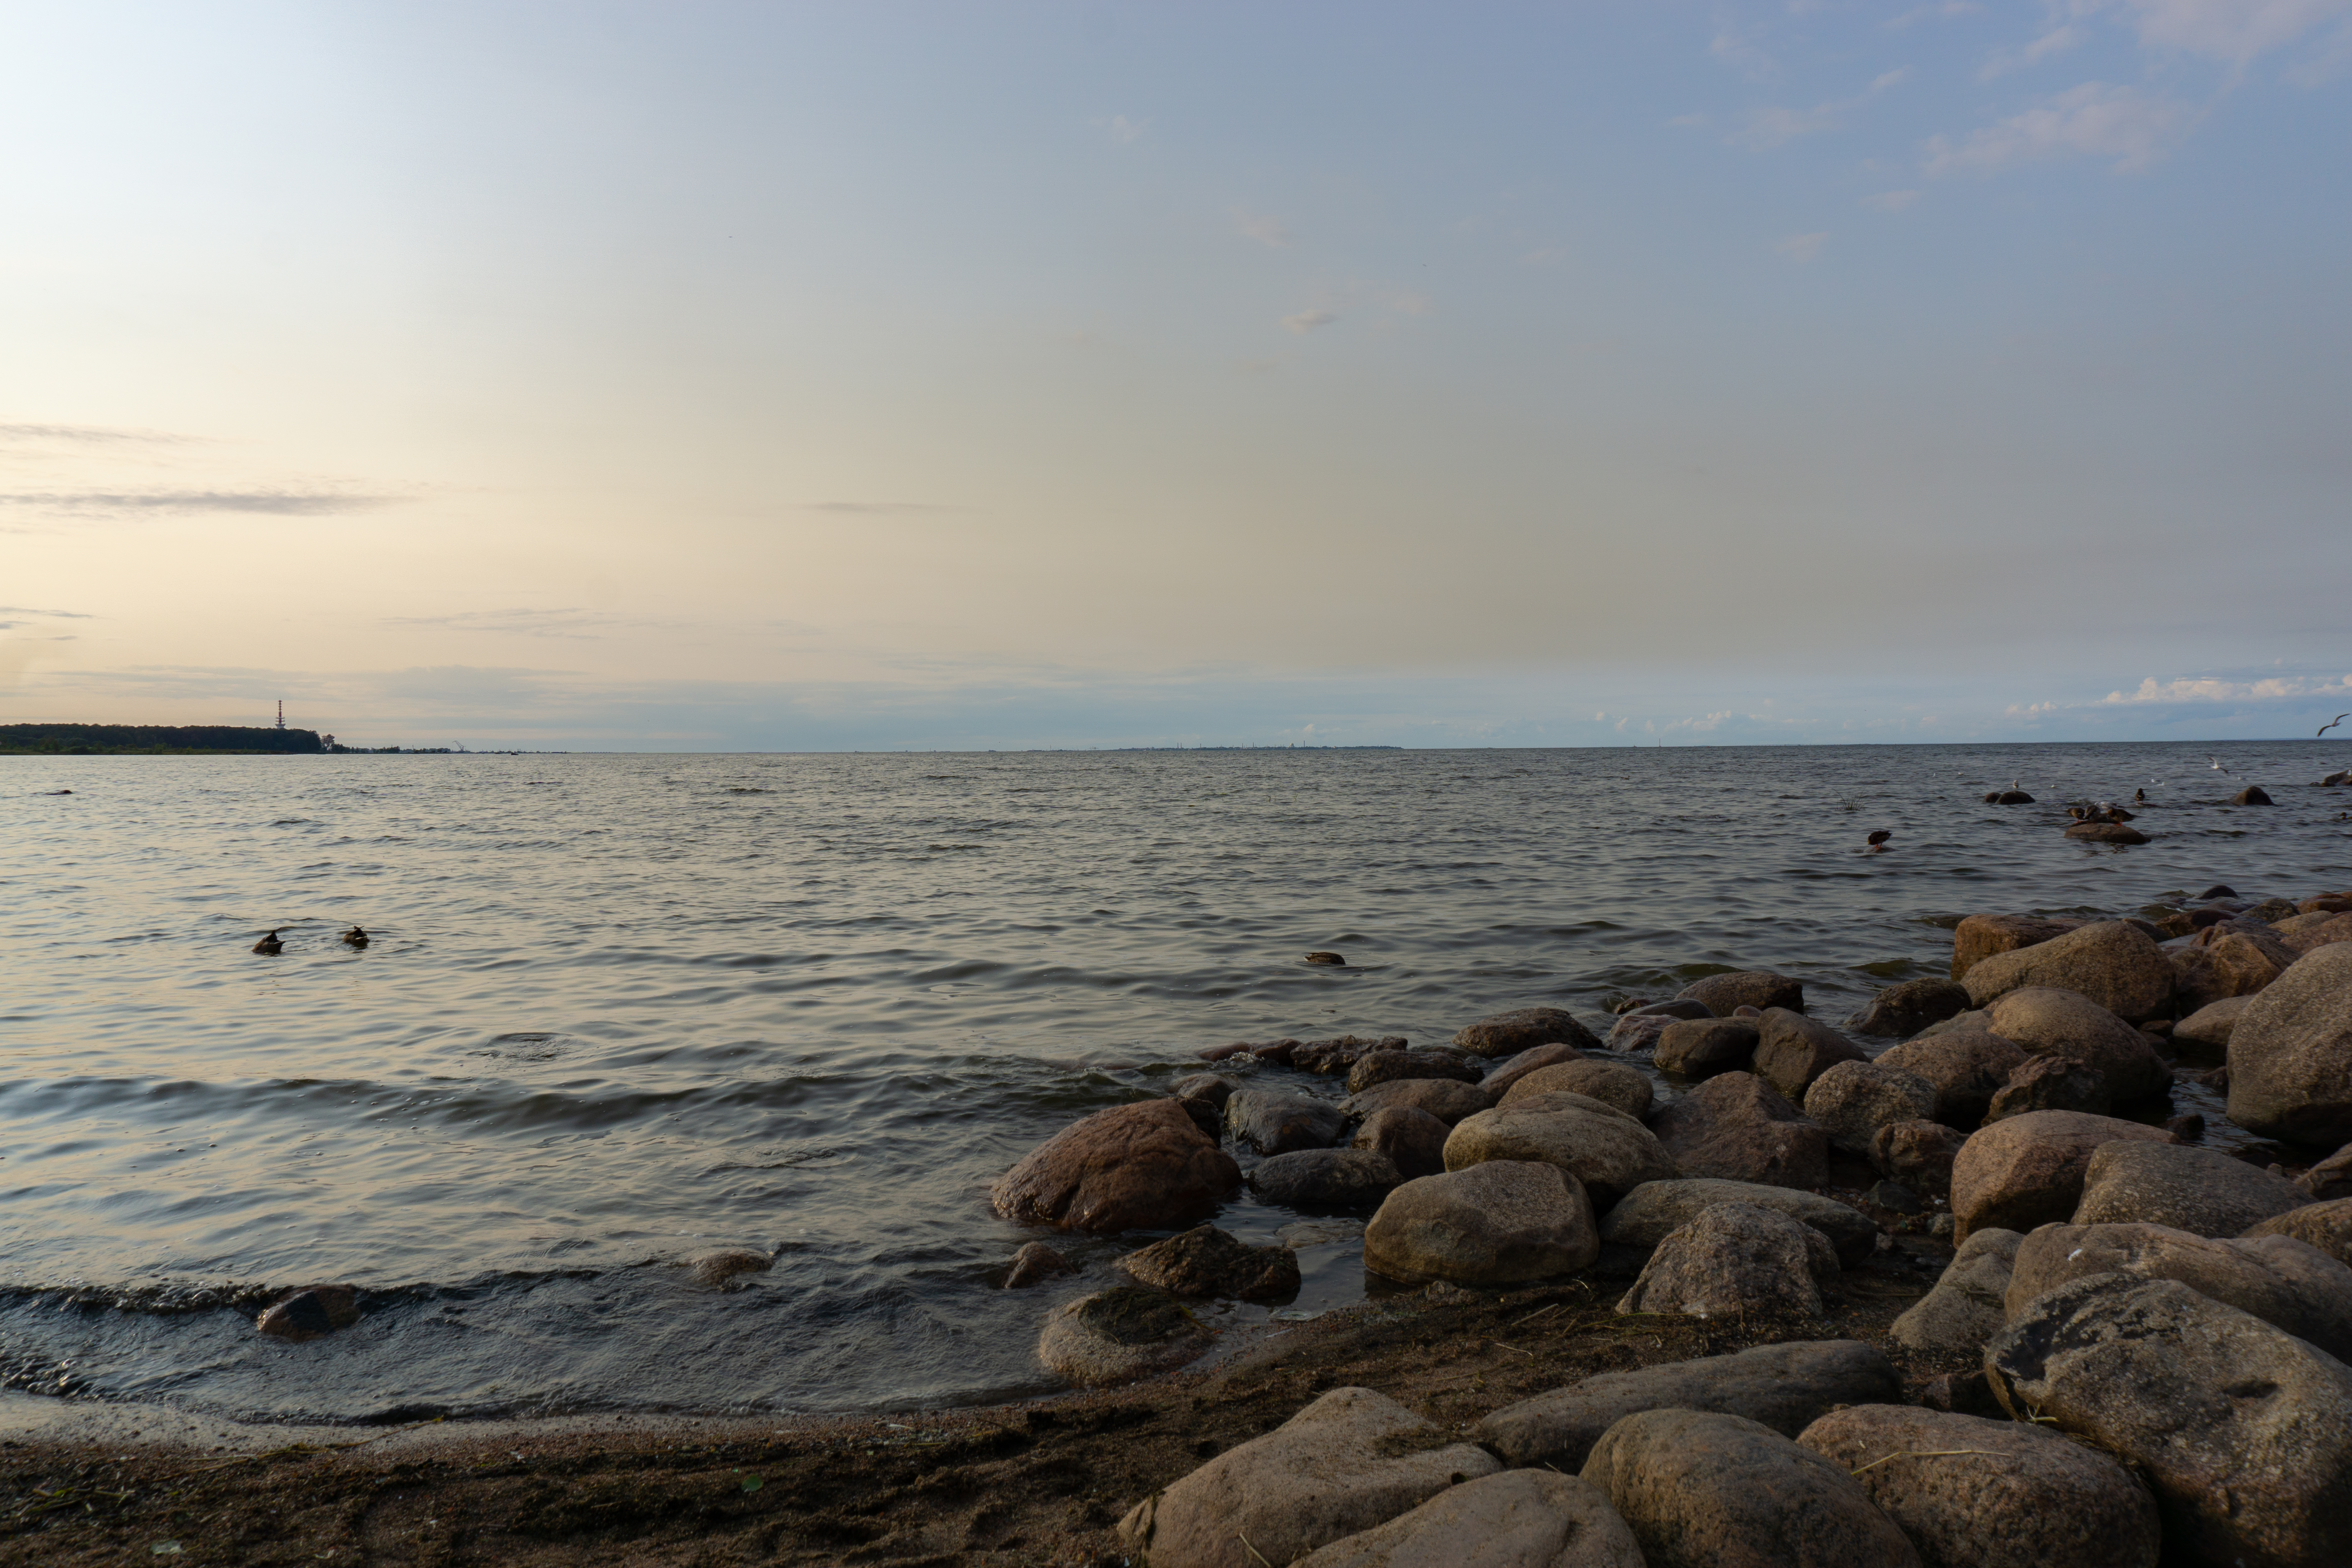 sunset at the gulf of finland author belikoff ale alexander